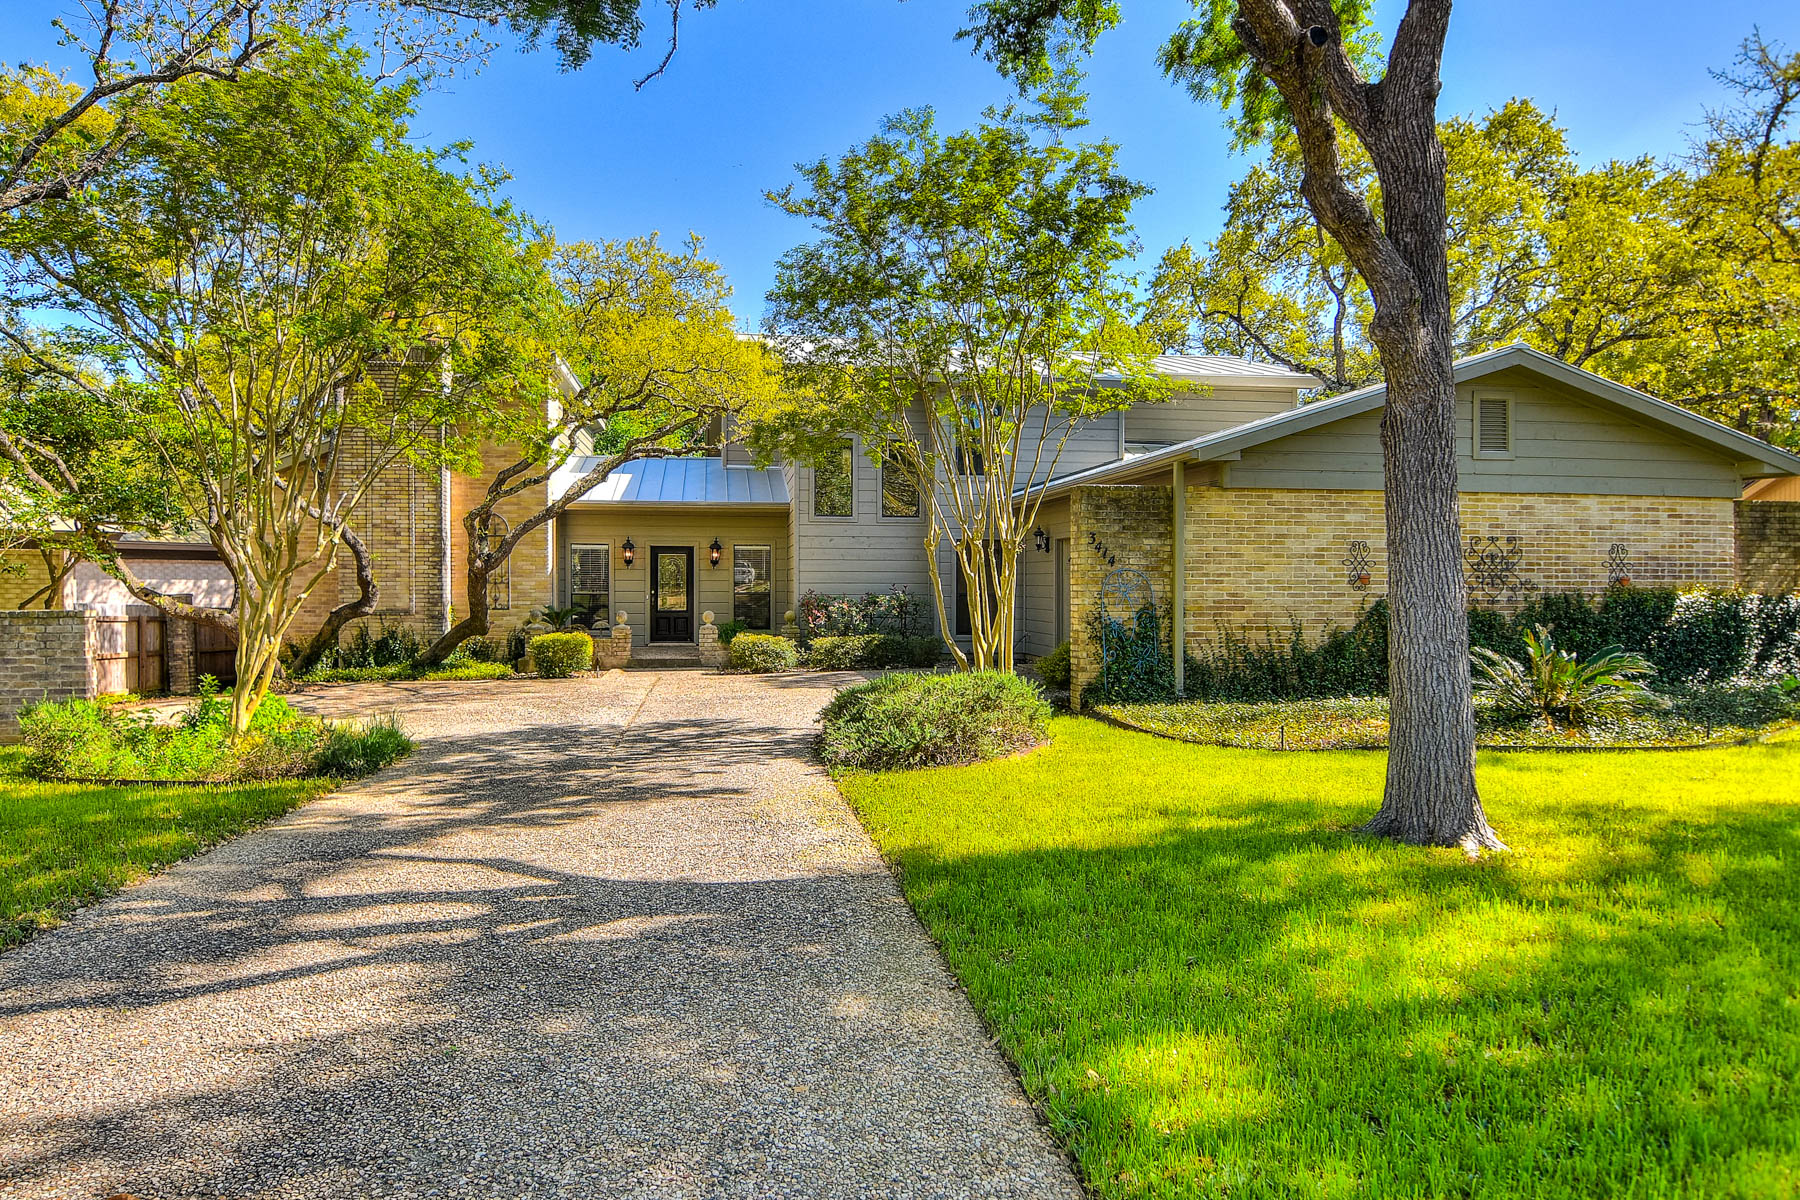 Single Family Home for Sale at Beautifully Maintained Home in Elm Creek 3414 Elm Hollow St San Antonio, Texas 78230 United States